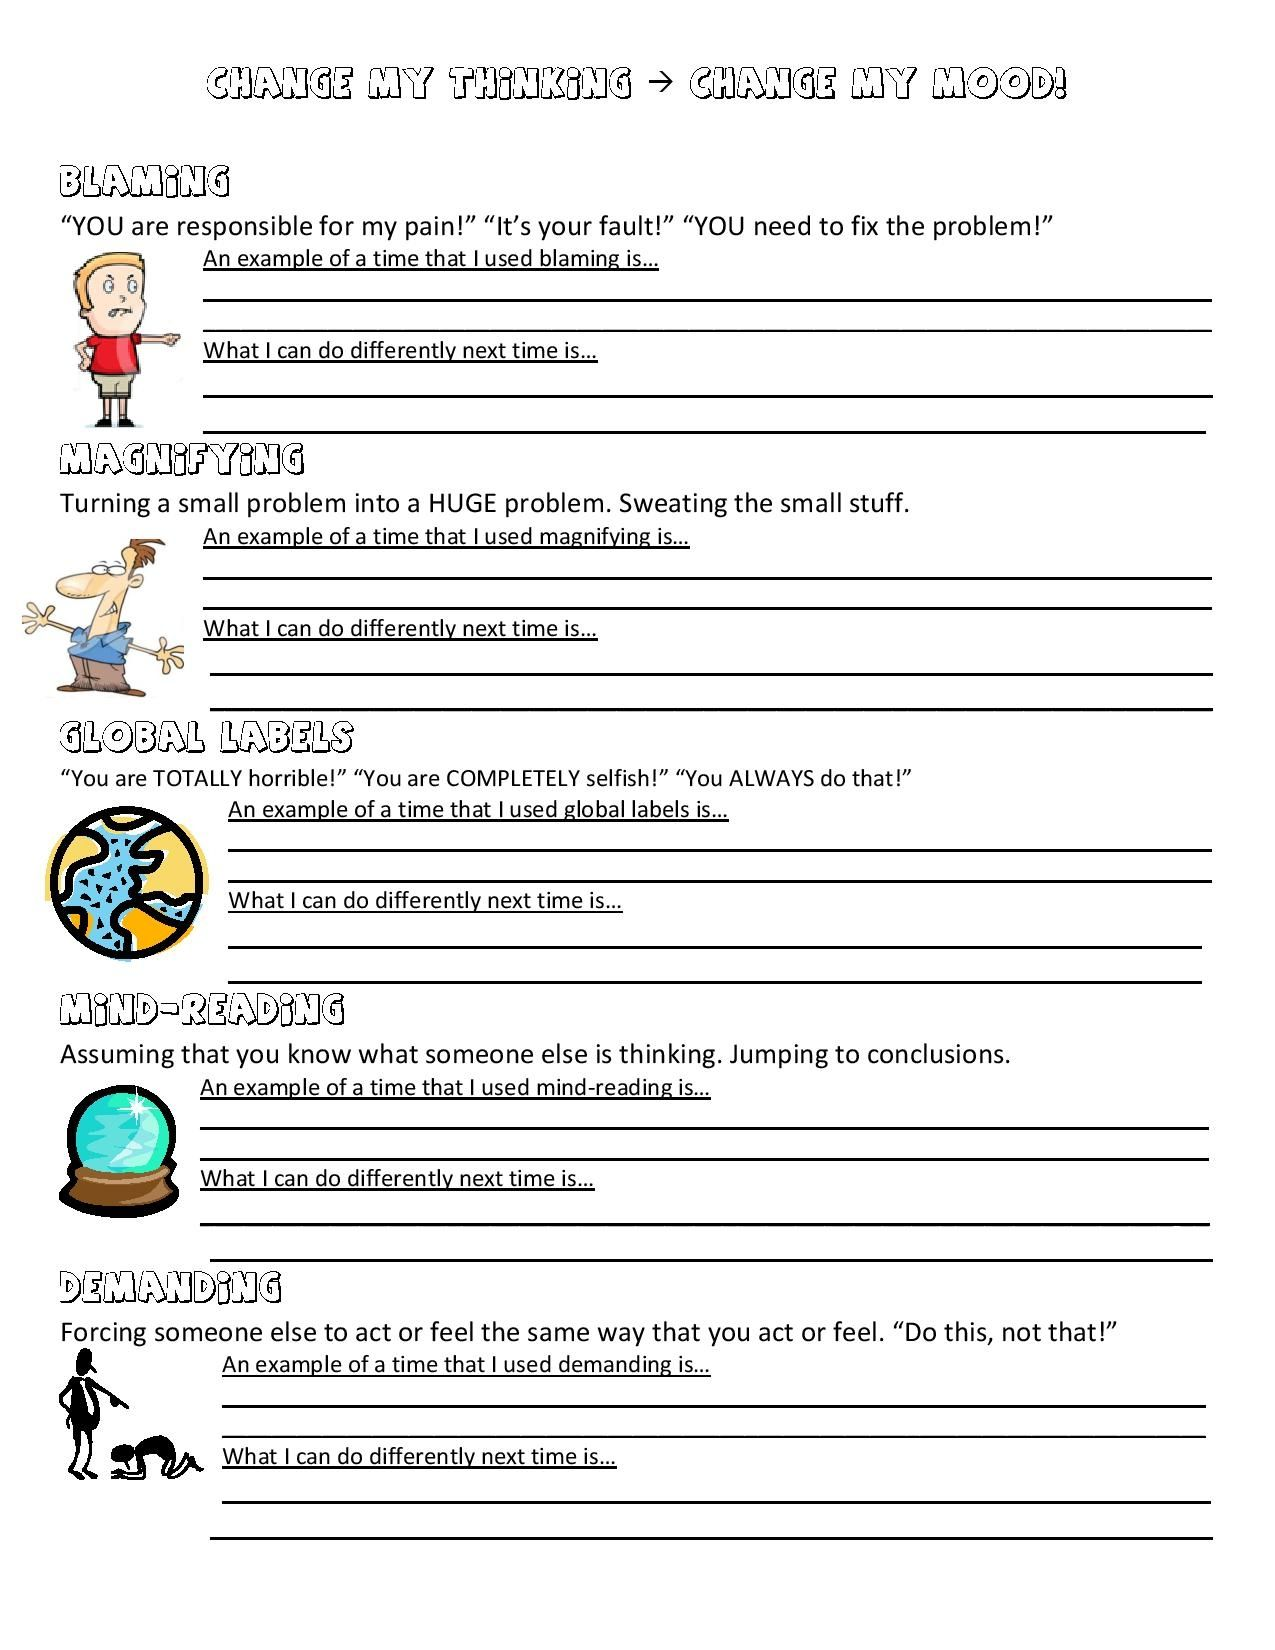 Treatments That Work Worksheet